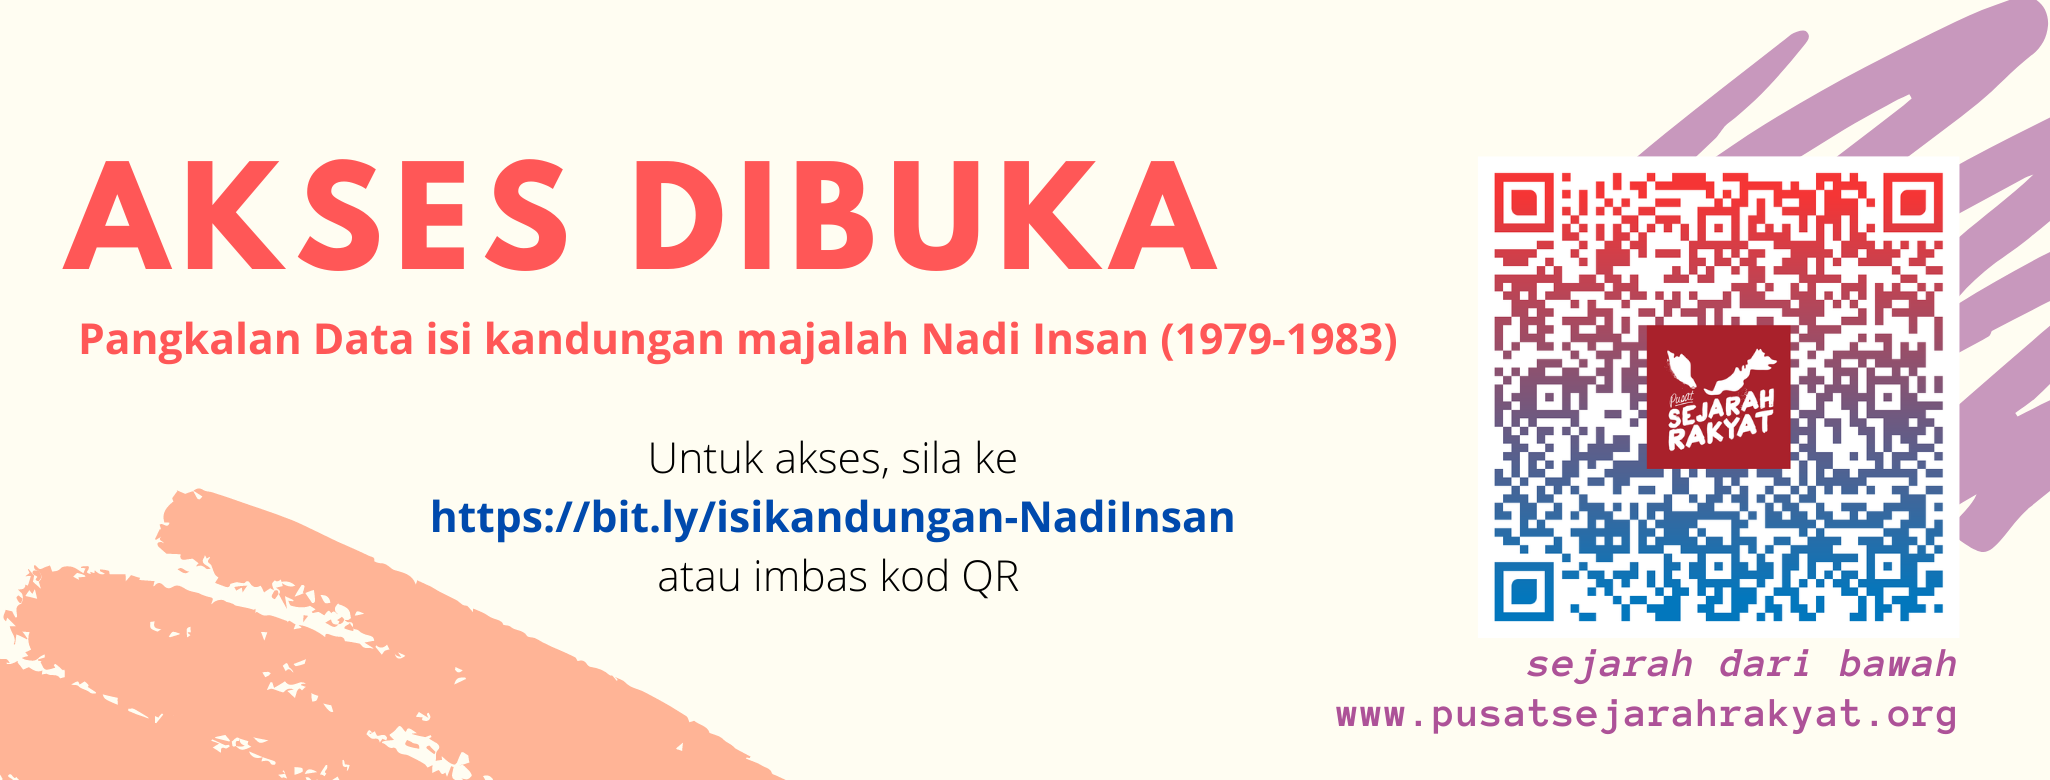 Photo of Dibuka: Pangkalan Data isi kandungan majalah Nadi Insan (1979-1983)